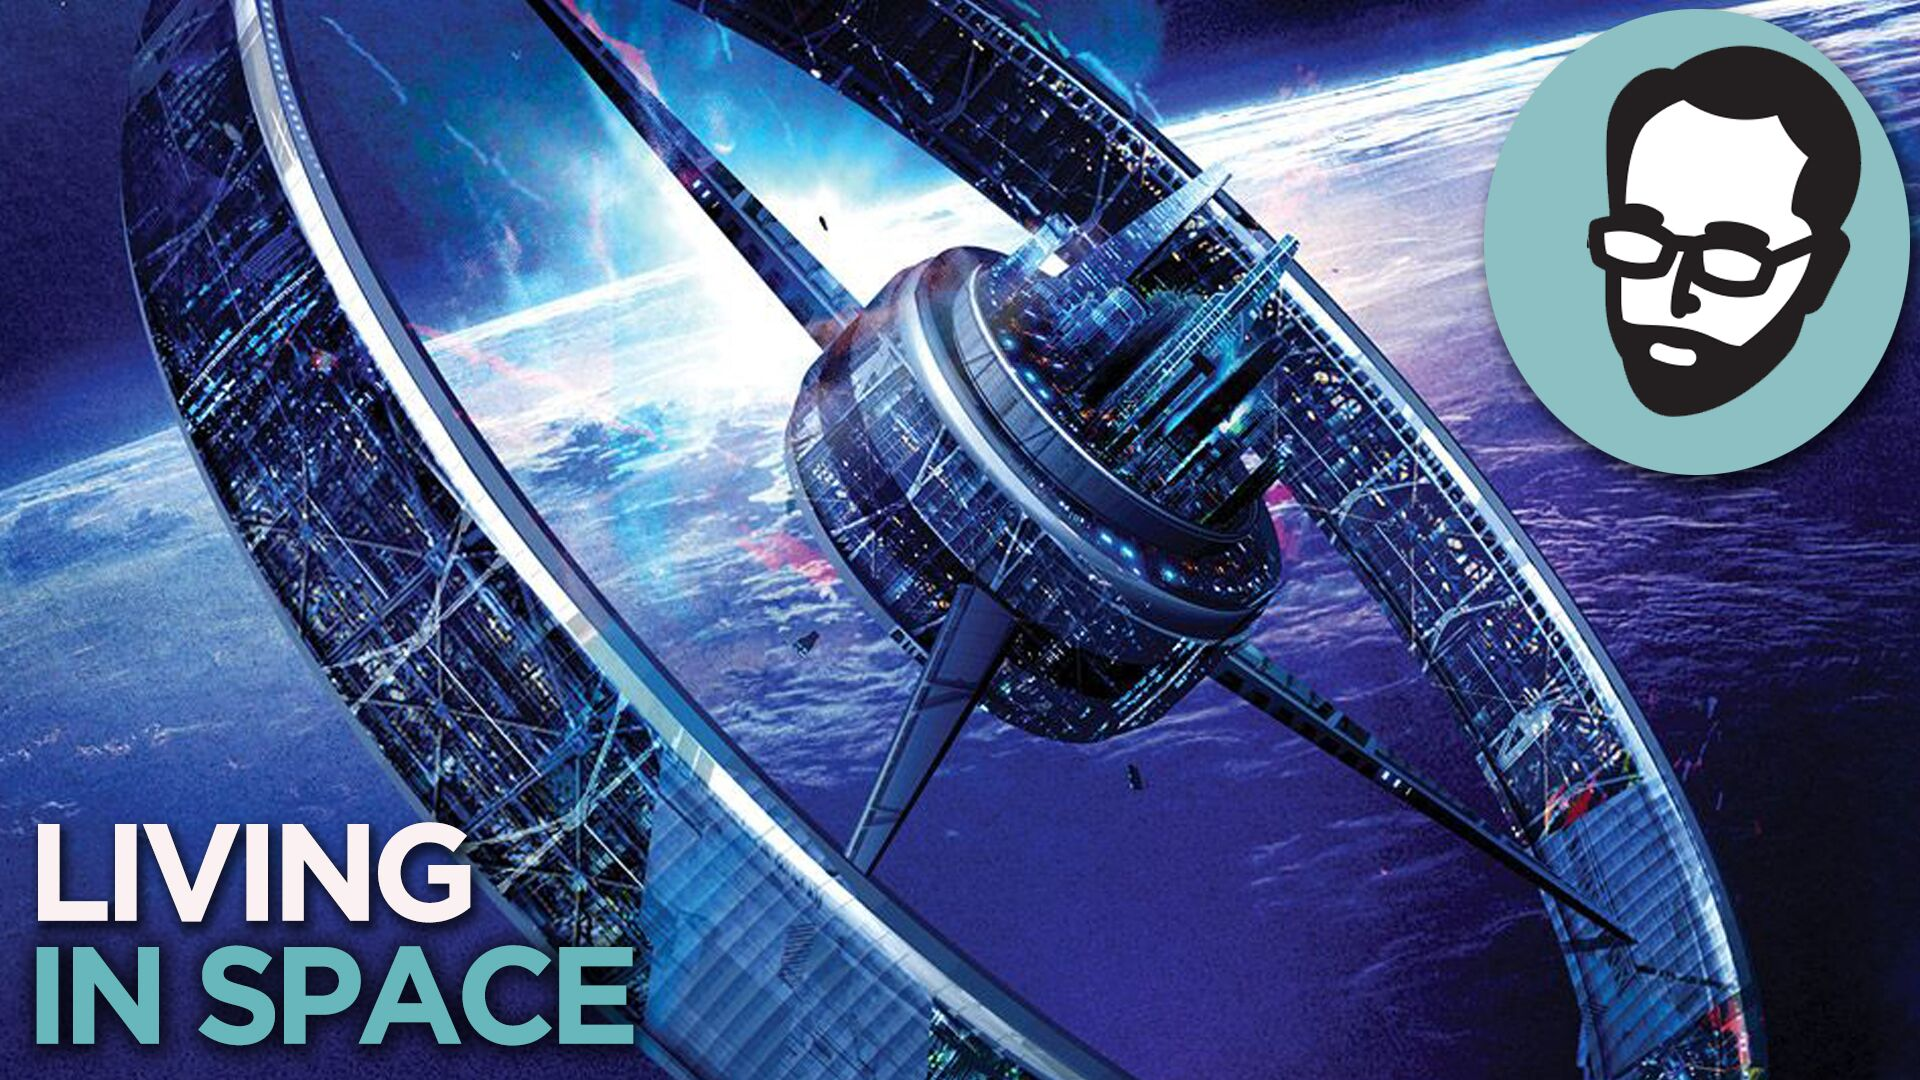 Space Stations: Past, Present, And Future - Answers With Joe